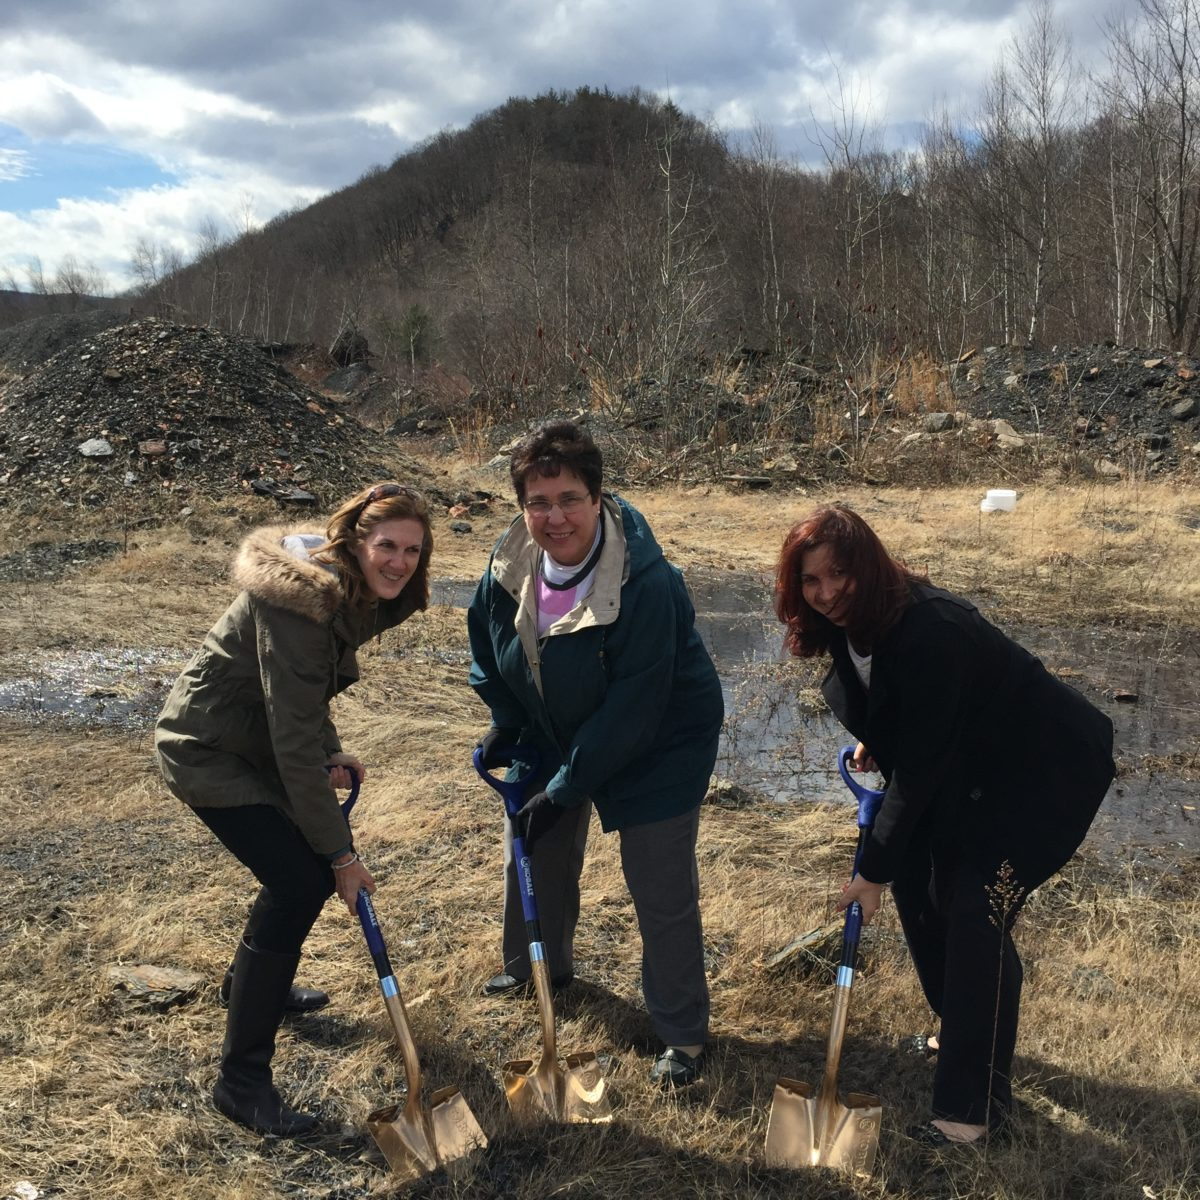 Groundbreaking Strides in Coal Township